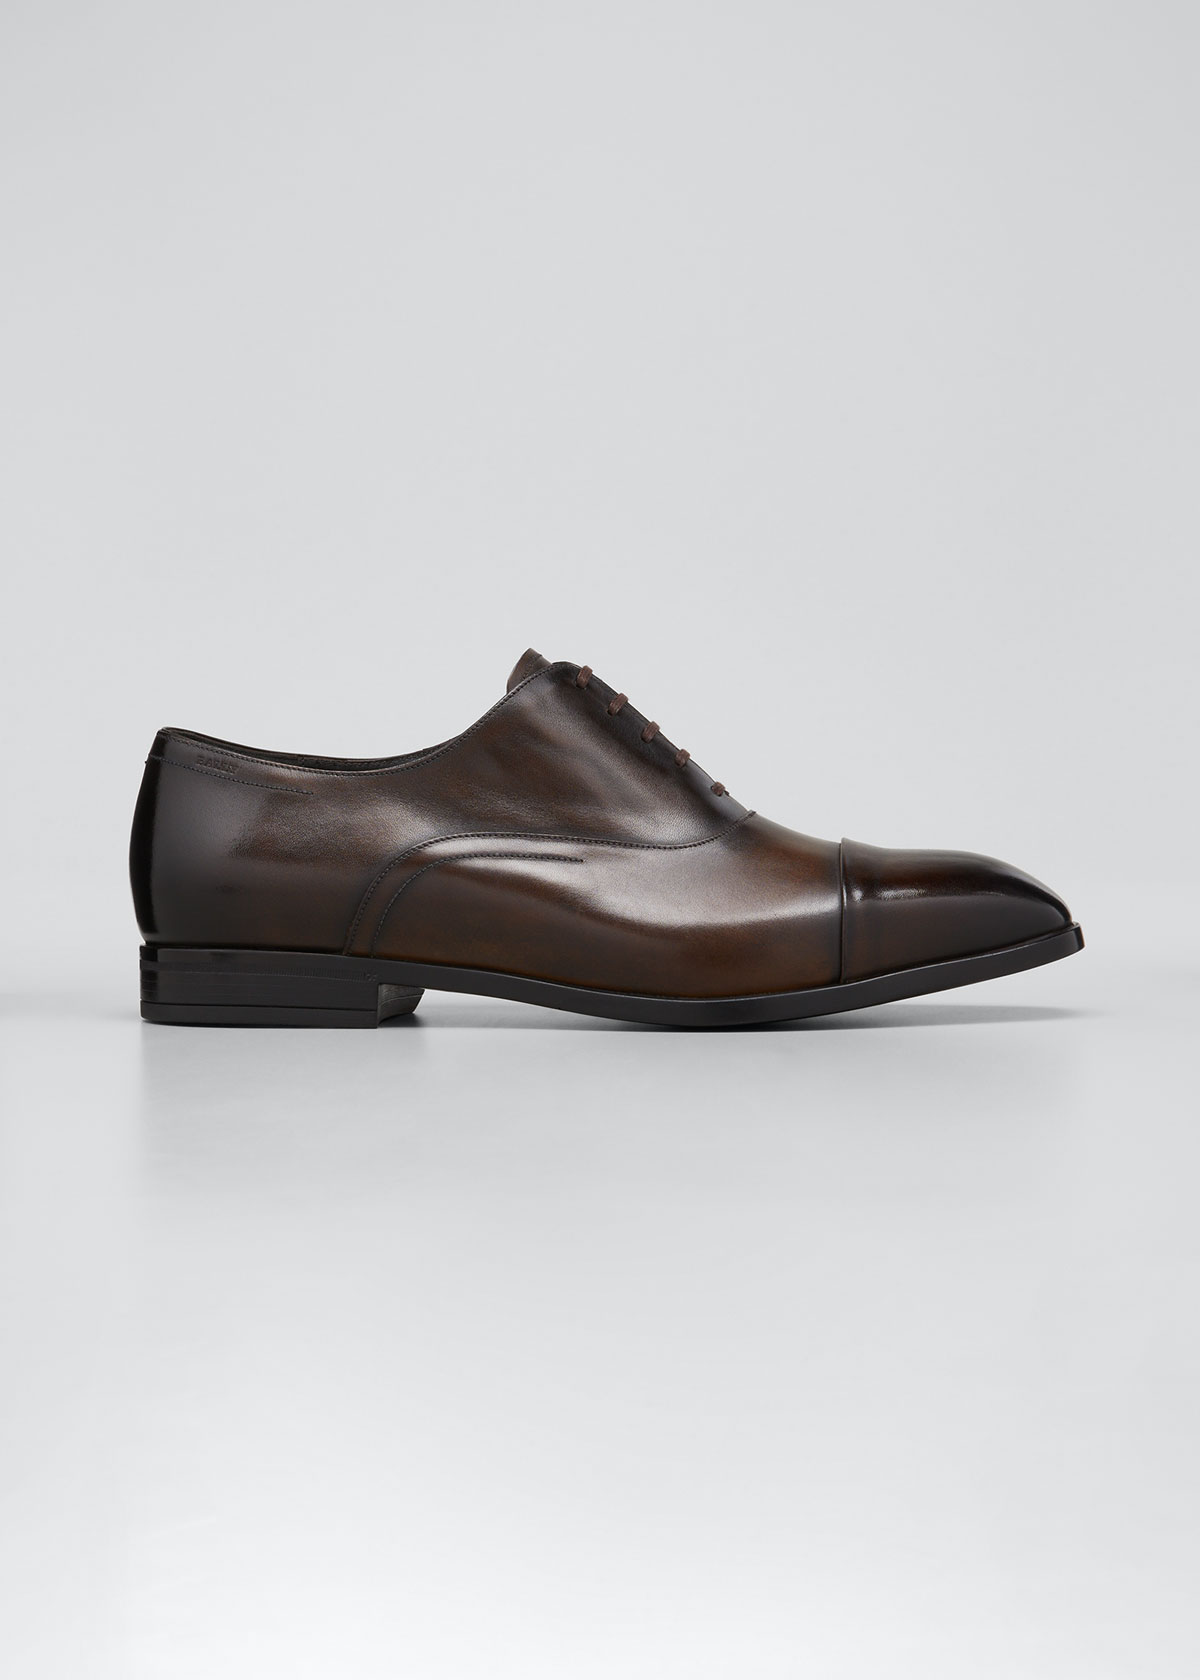 Bally MEN'S LIZZAR 23 CAP-TOE LACE-UP SHOES